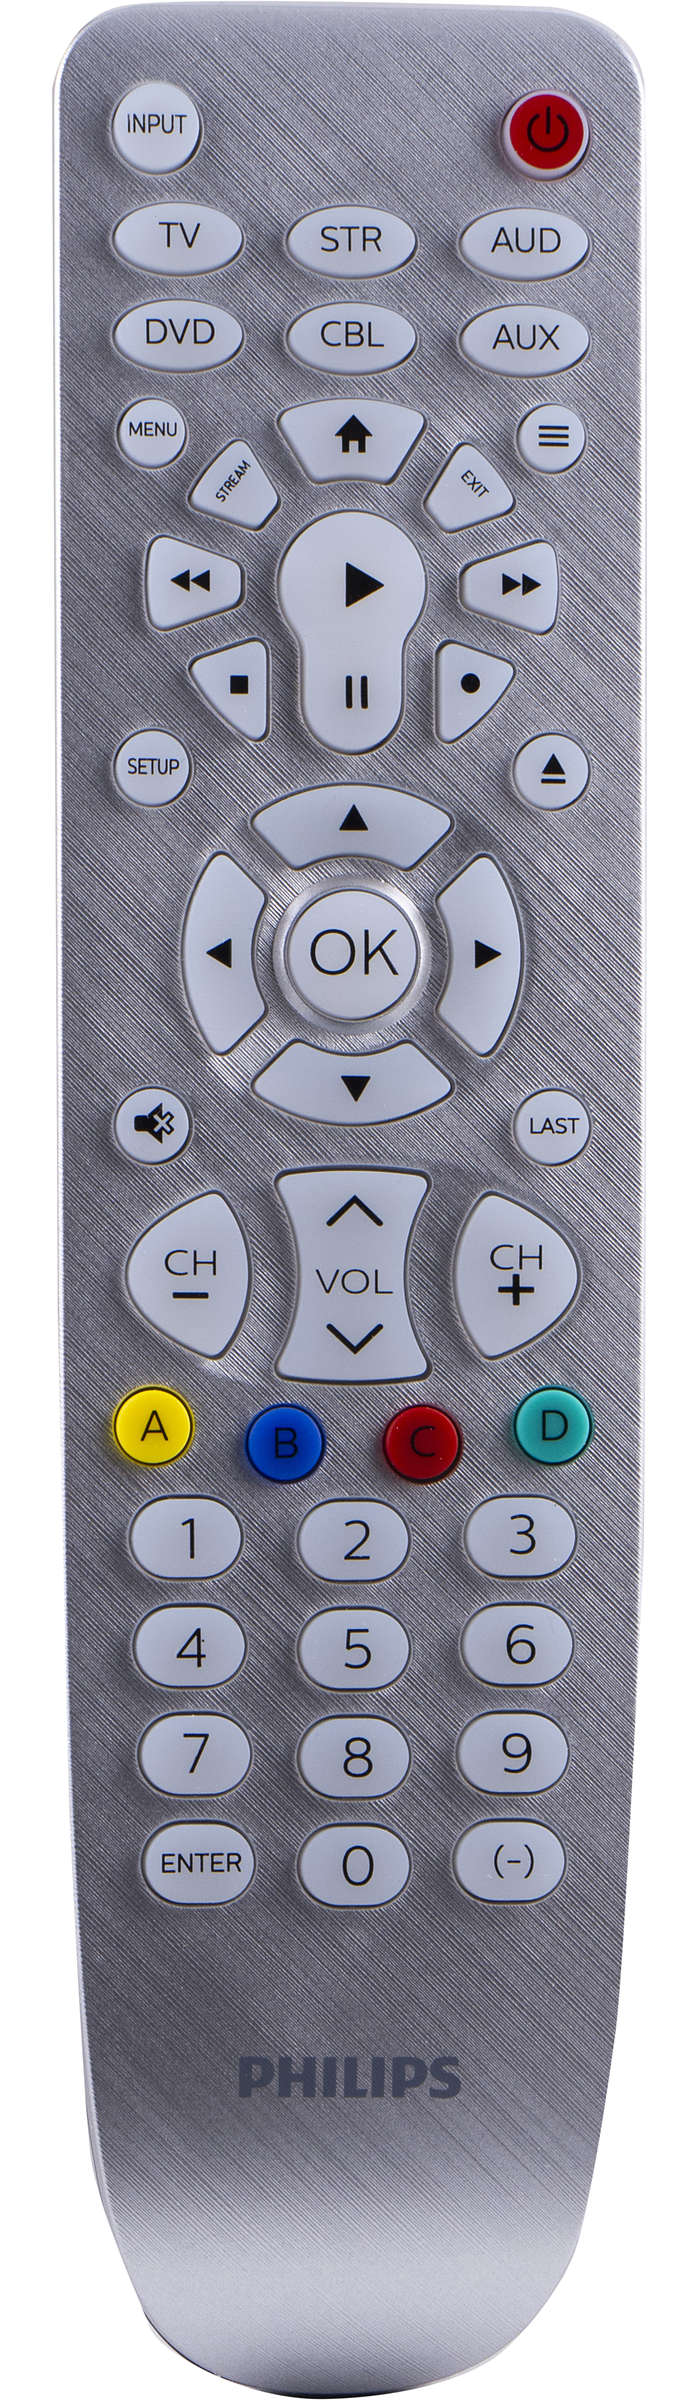 6 Device Universal Remote Control, Backlit